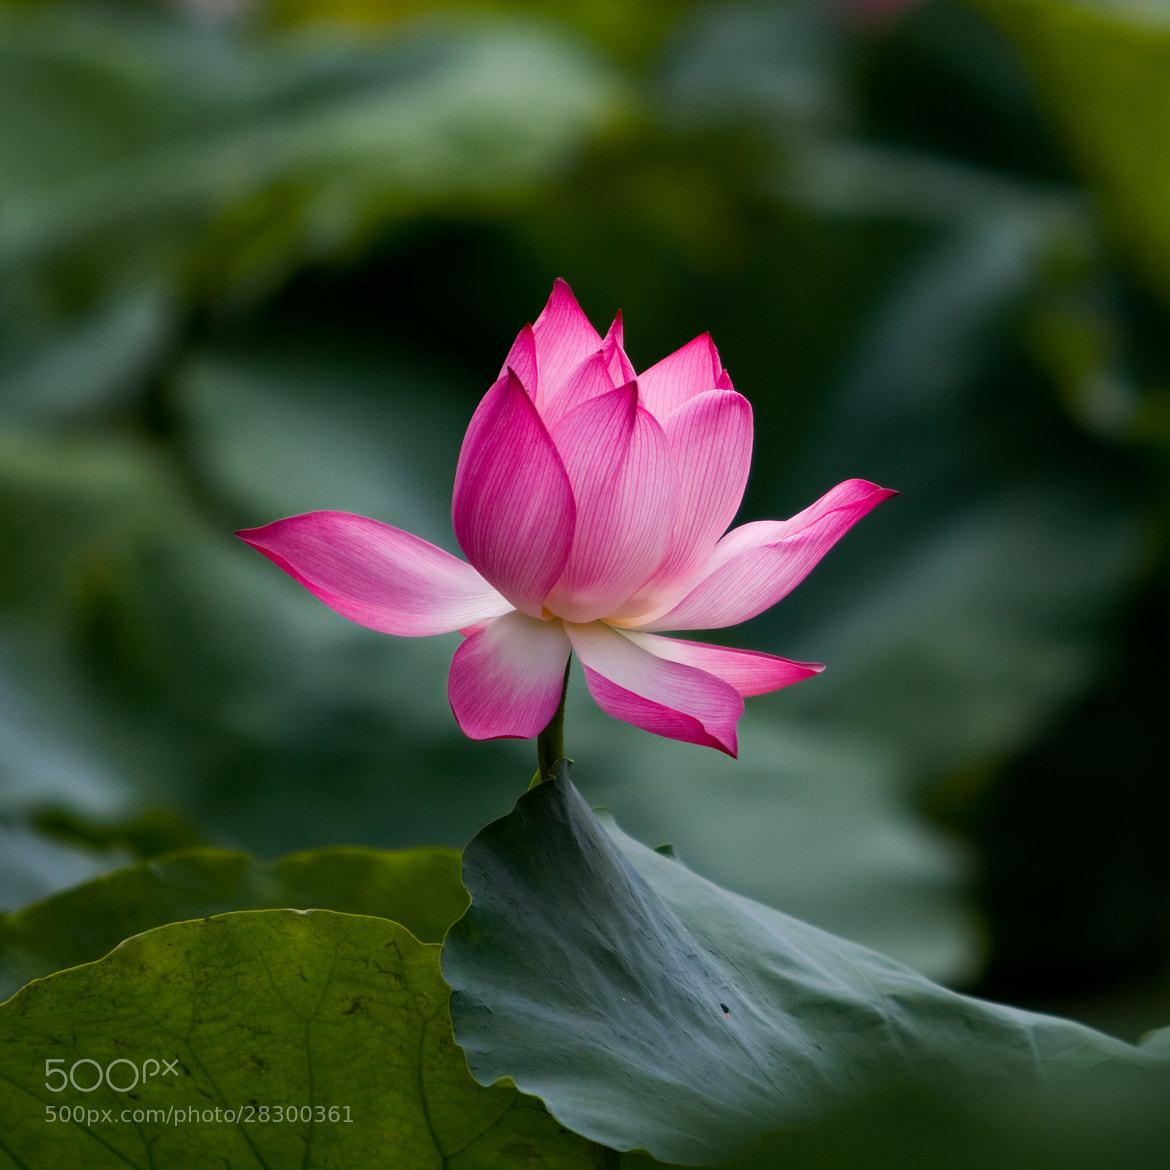 Photograph Lotus flower by Bui Hung on 500px